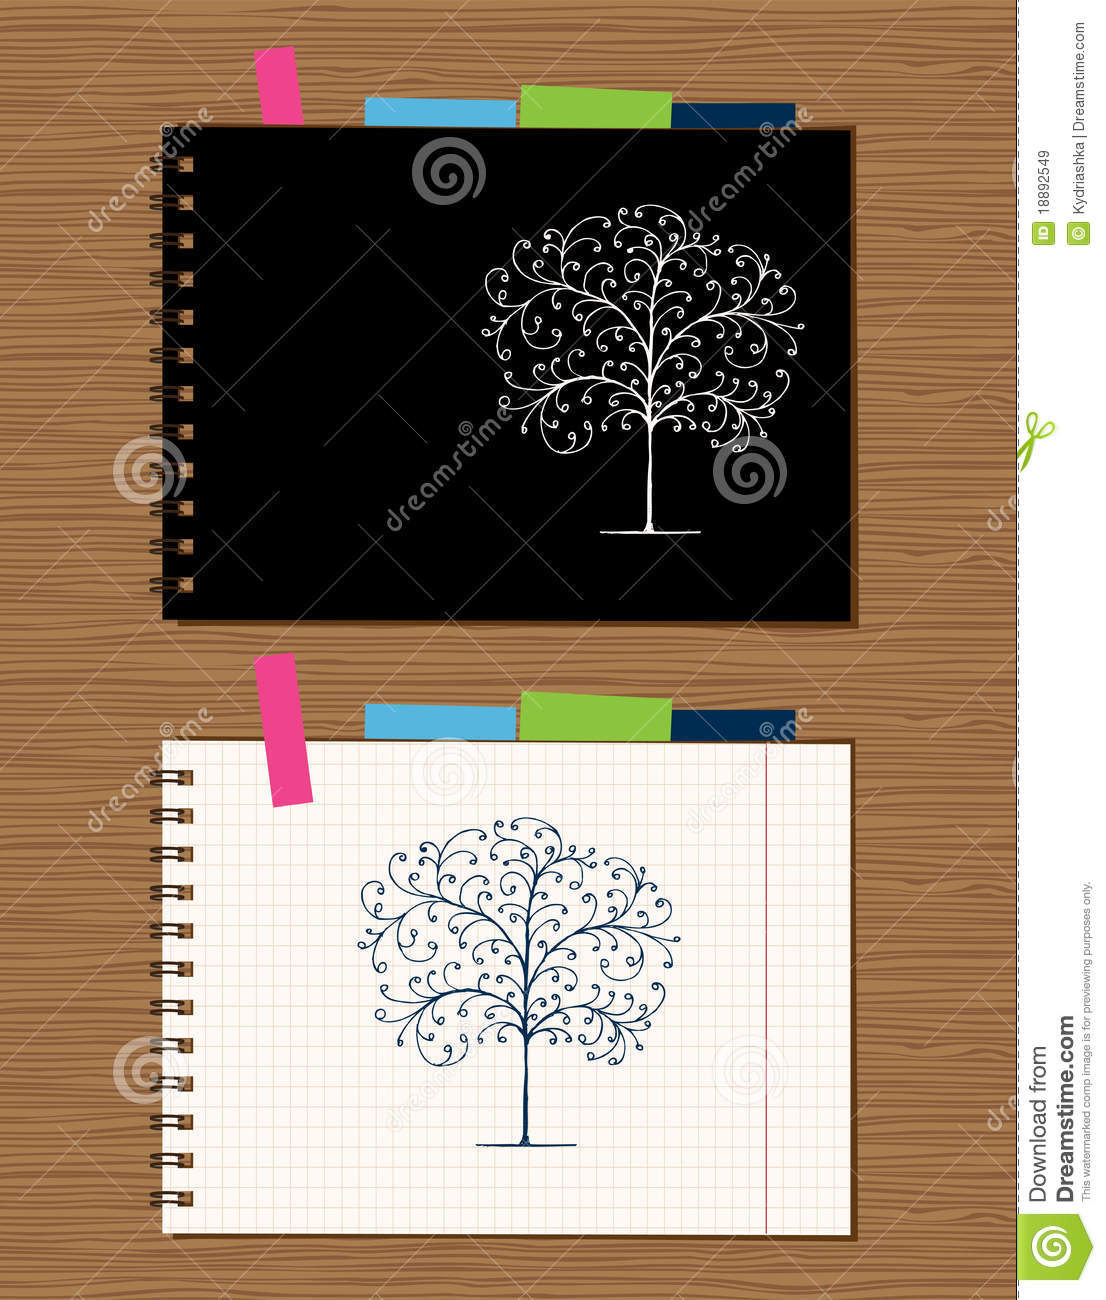 notebook pages design images notebook cover and page design royalty stock images image